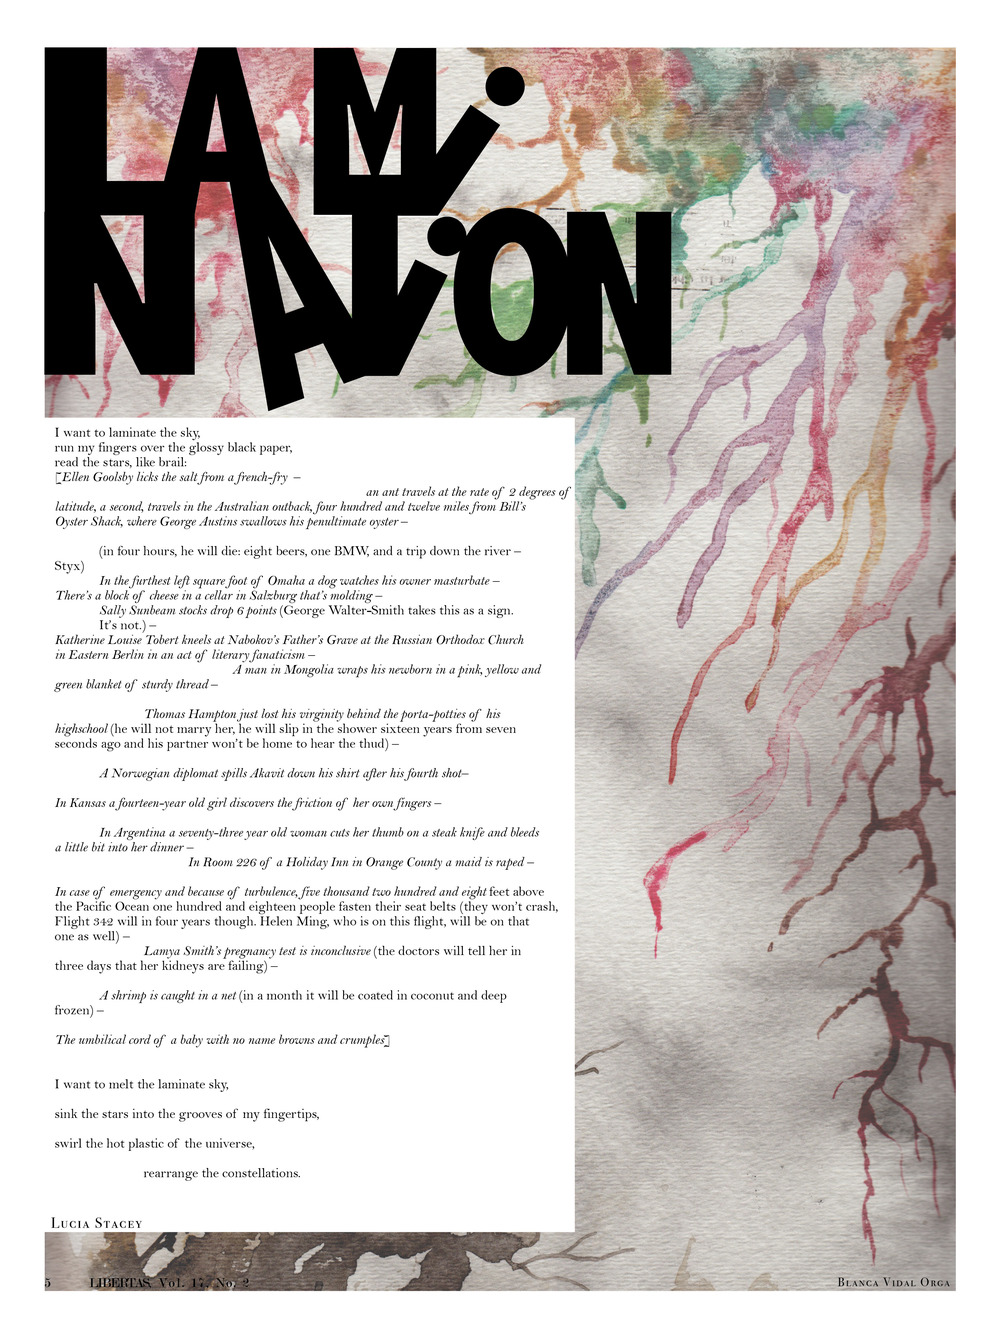 Networks Issue (Vol. 17, No. 2), page 5, layout design and typography